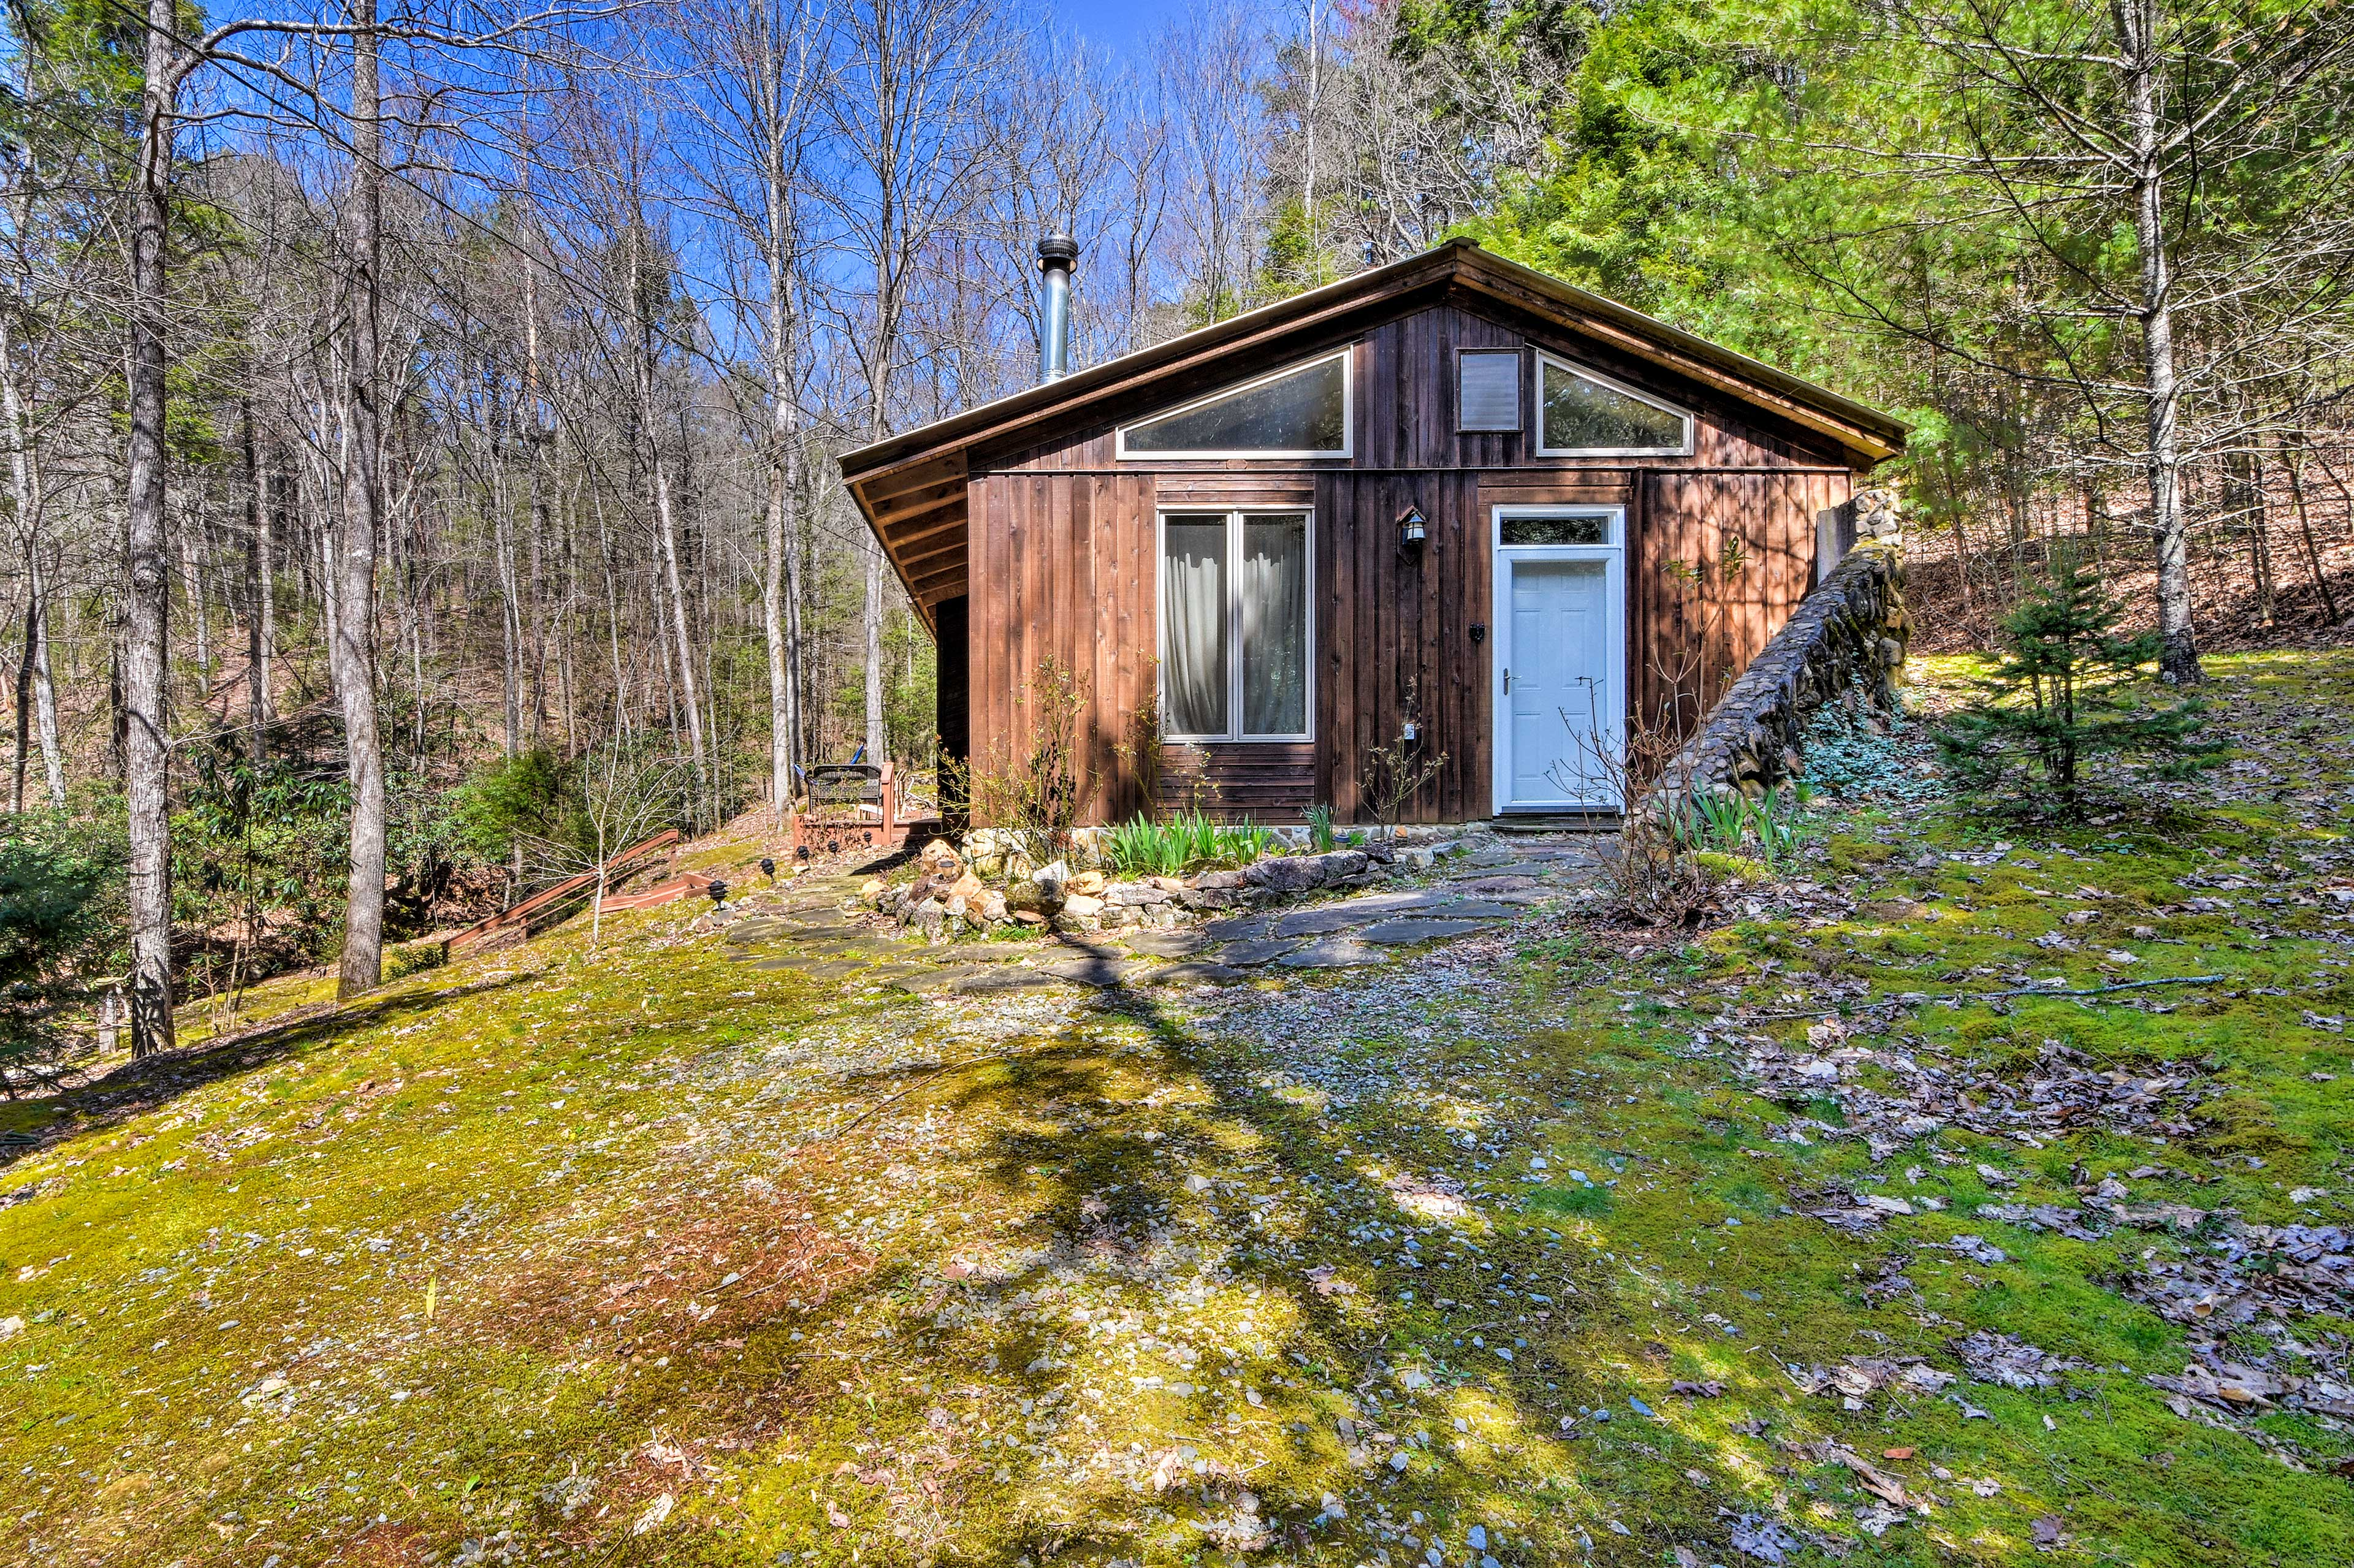 Book now to reserve your cozy and secluded getaway in the woods!